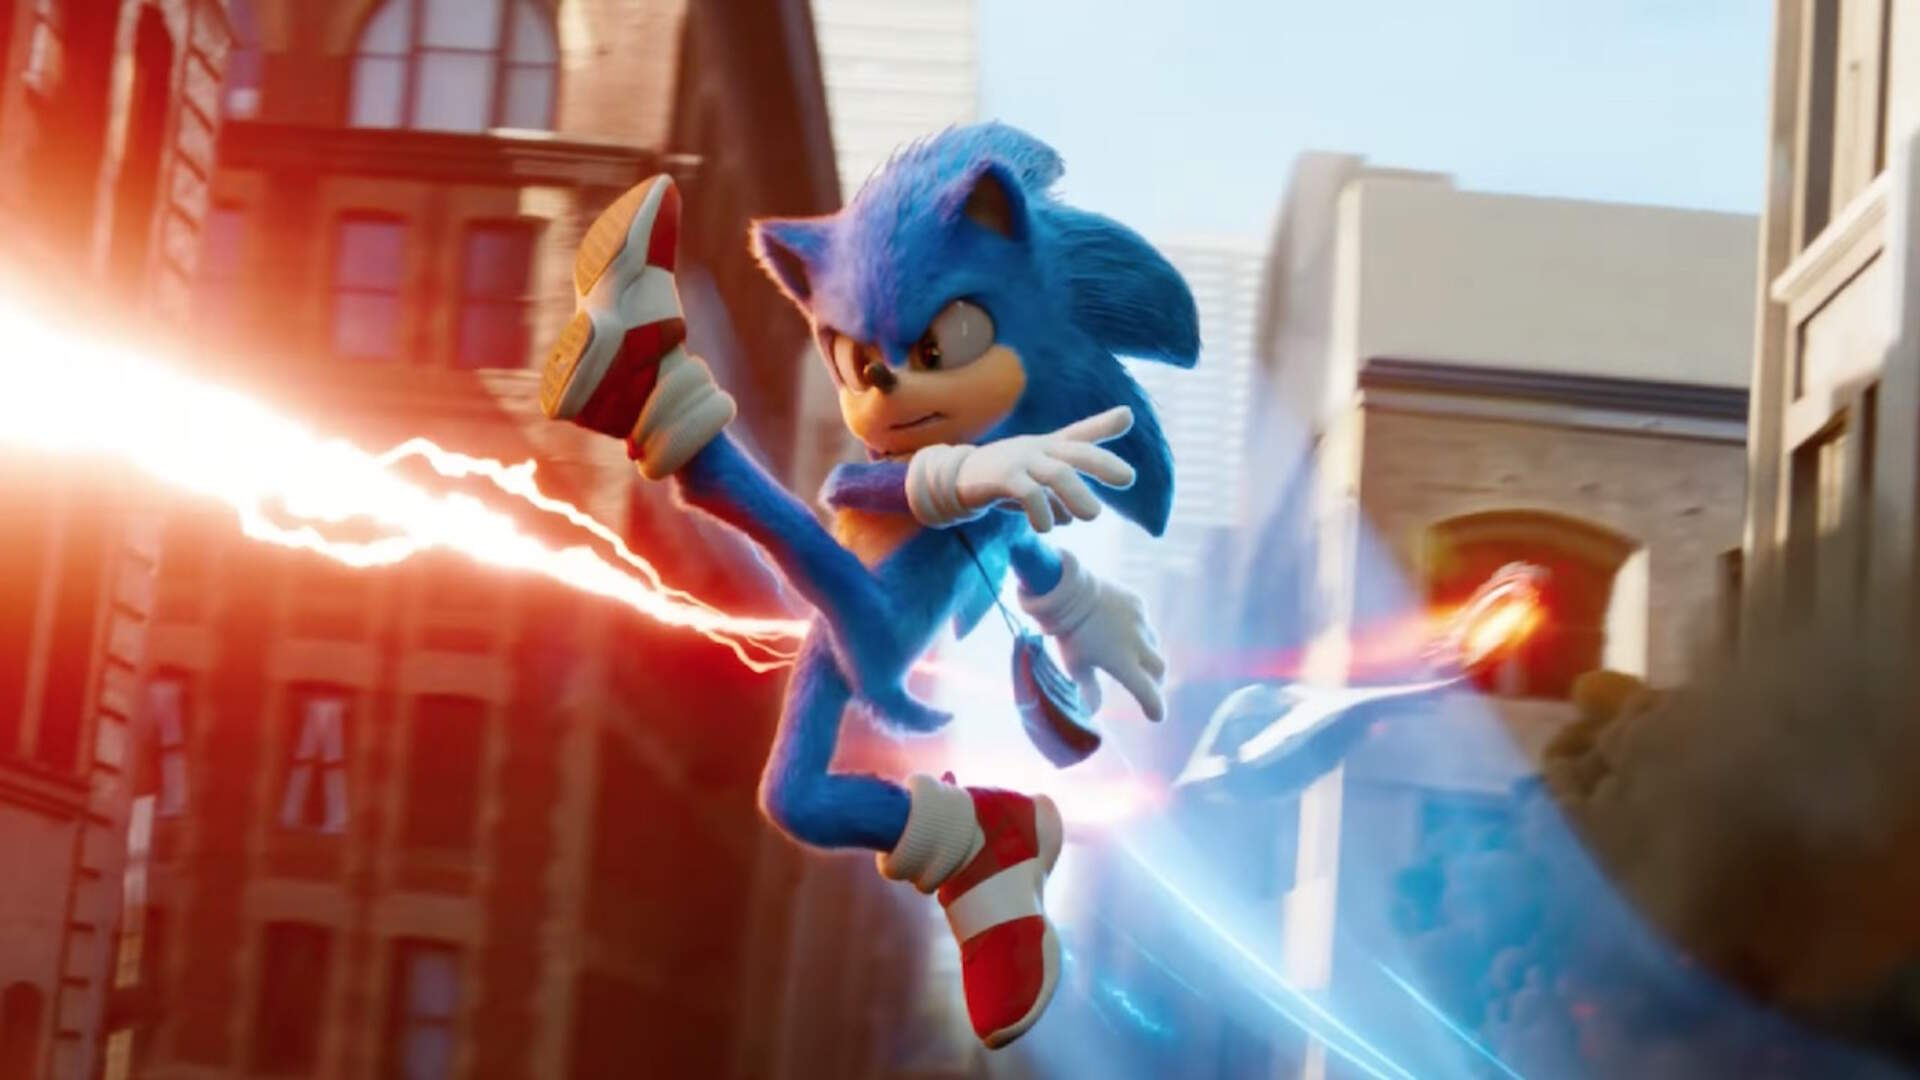 Sonic S Movie Redesign Still Holds Up In This New Wiz Khalifa Music Video Usgamer